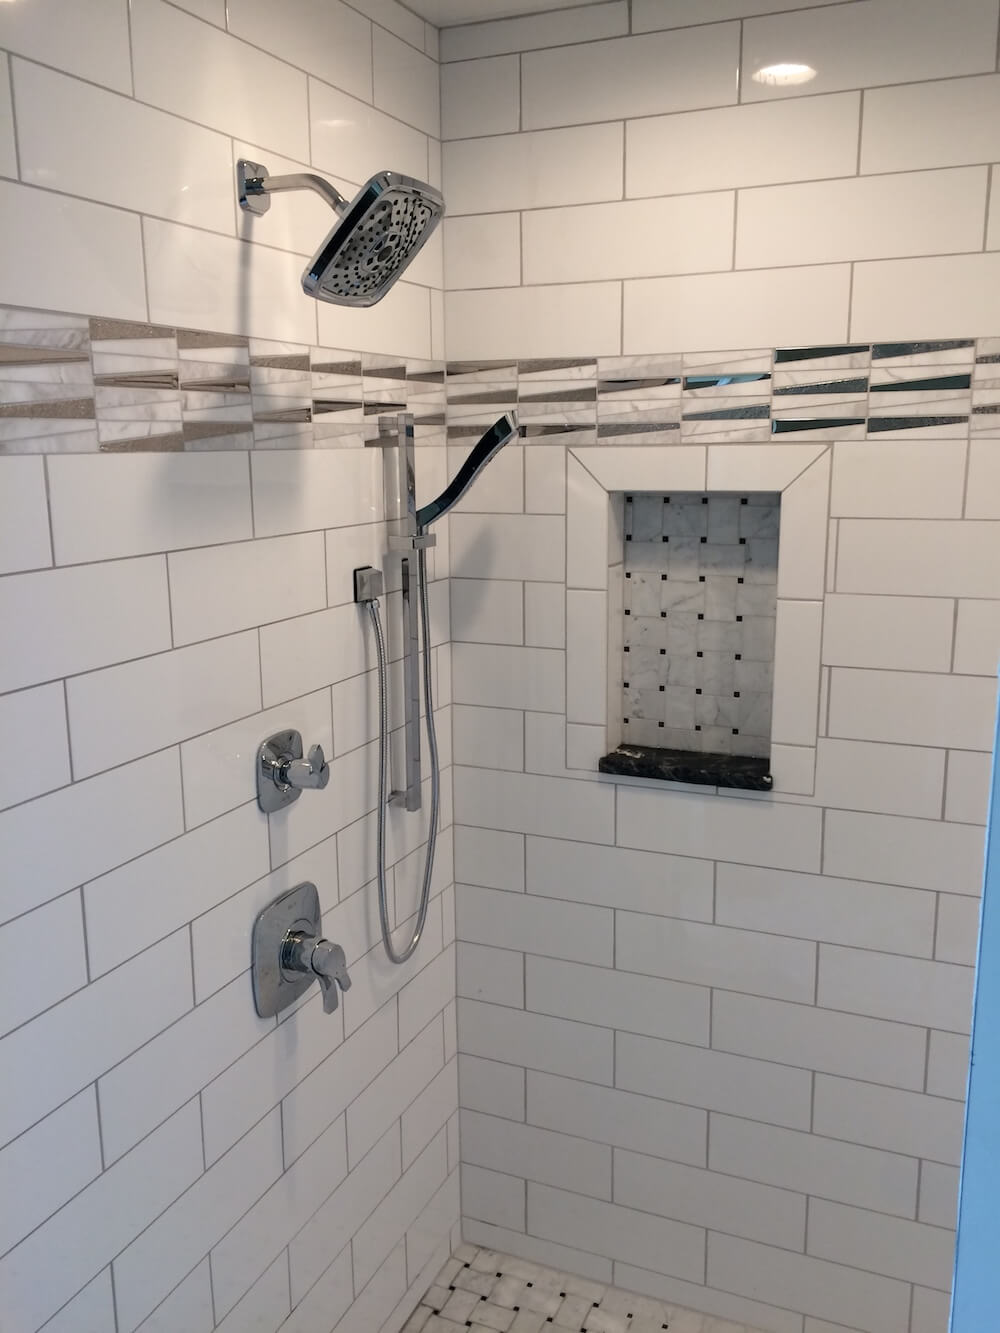 2017 regrouting shower tile cost regrout shower price - Average cost of a new bathroom 2017 ...